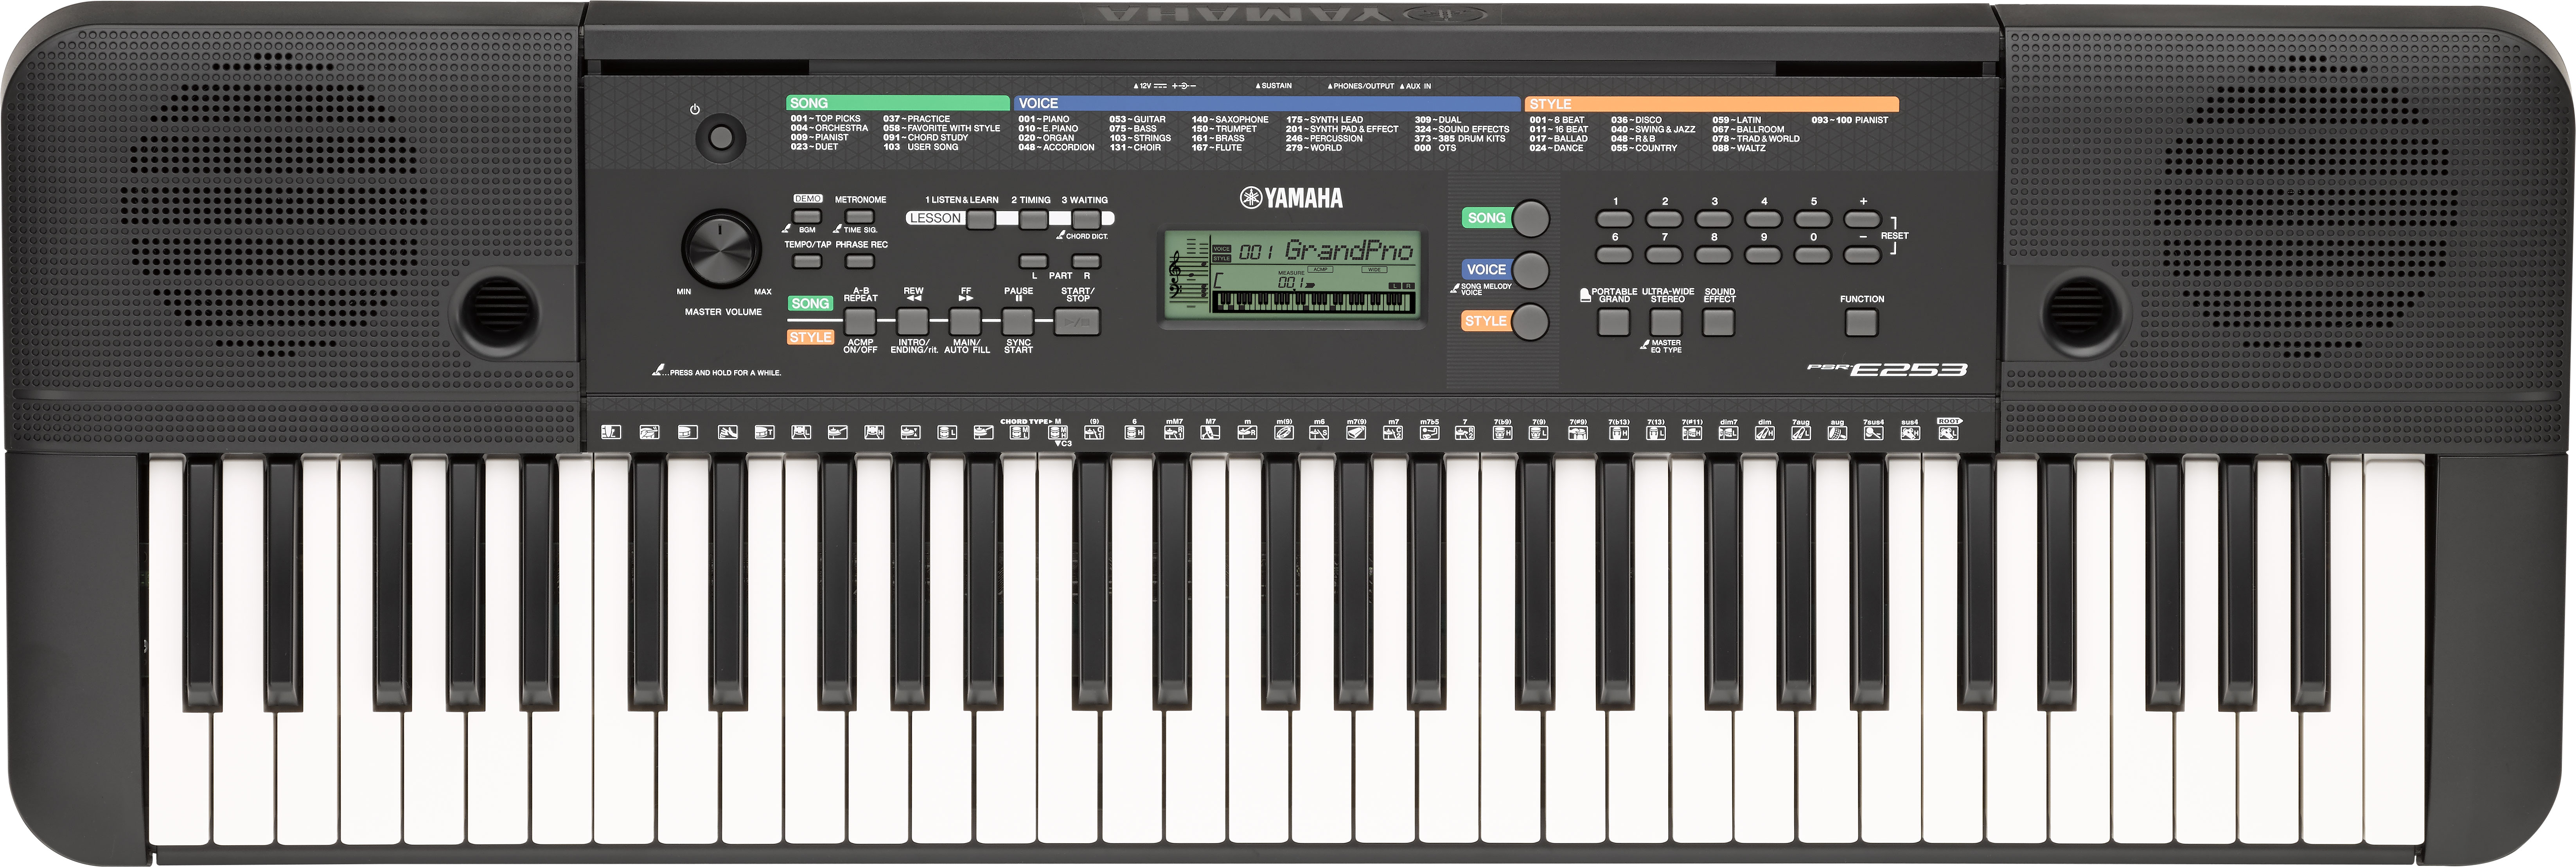 The psr e253 is an ideal first keyboard for aspiring musicians who are